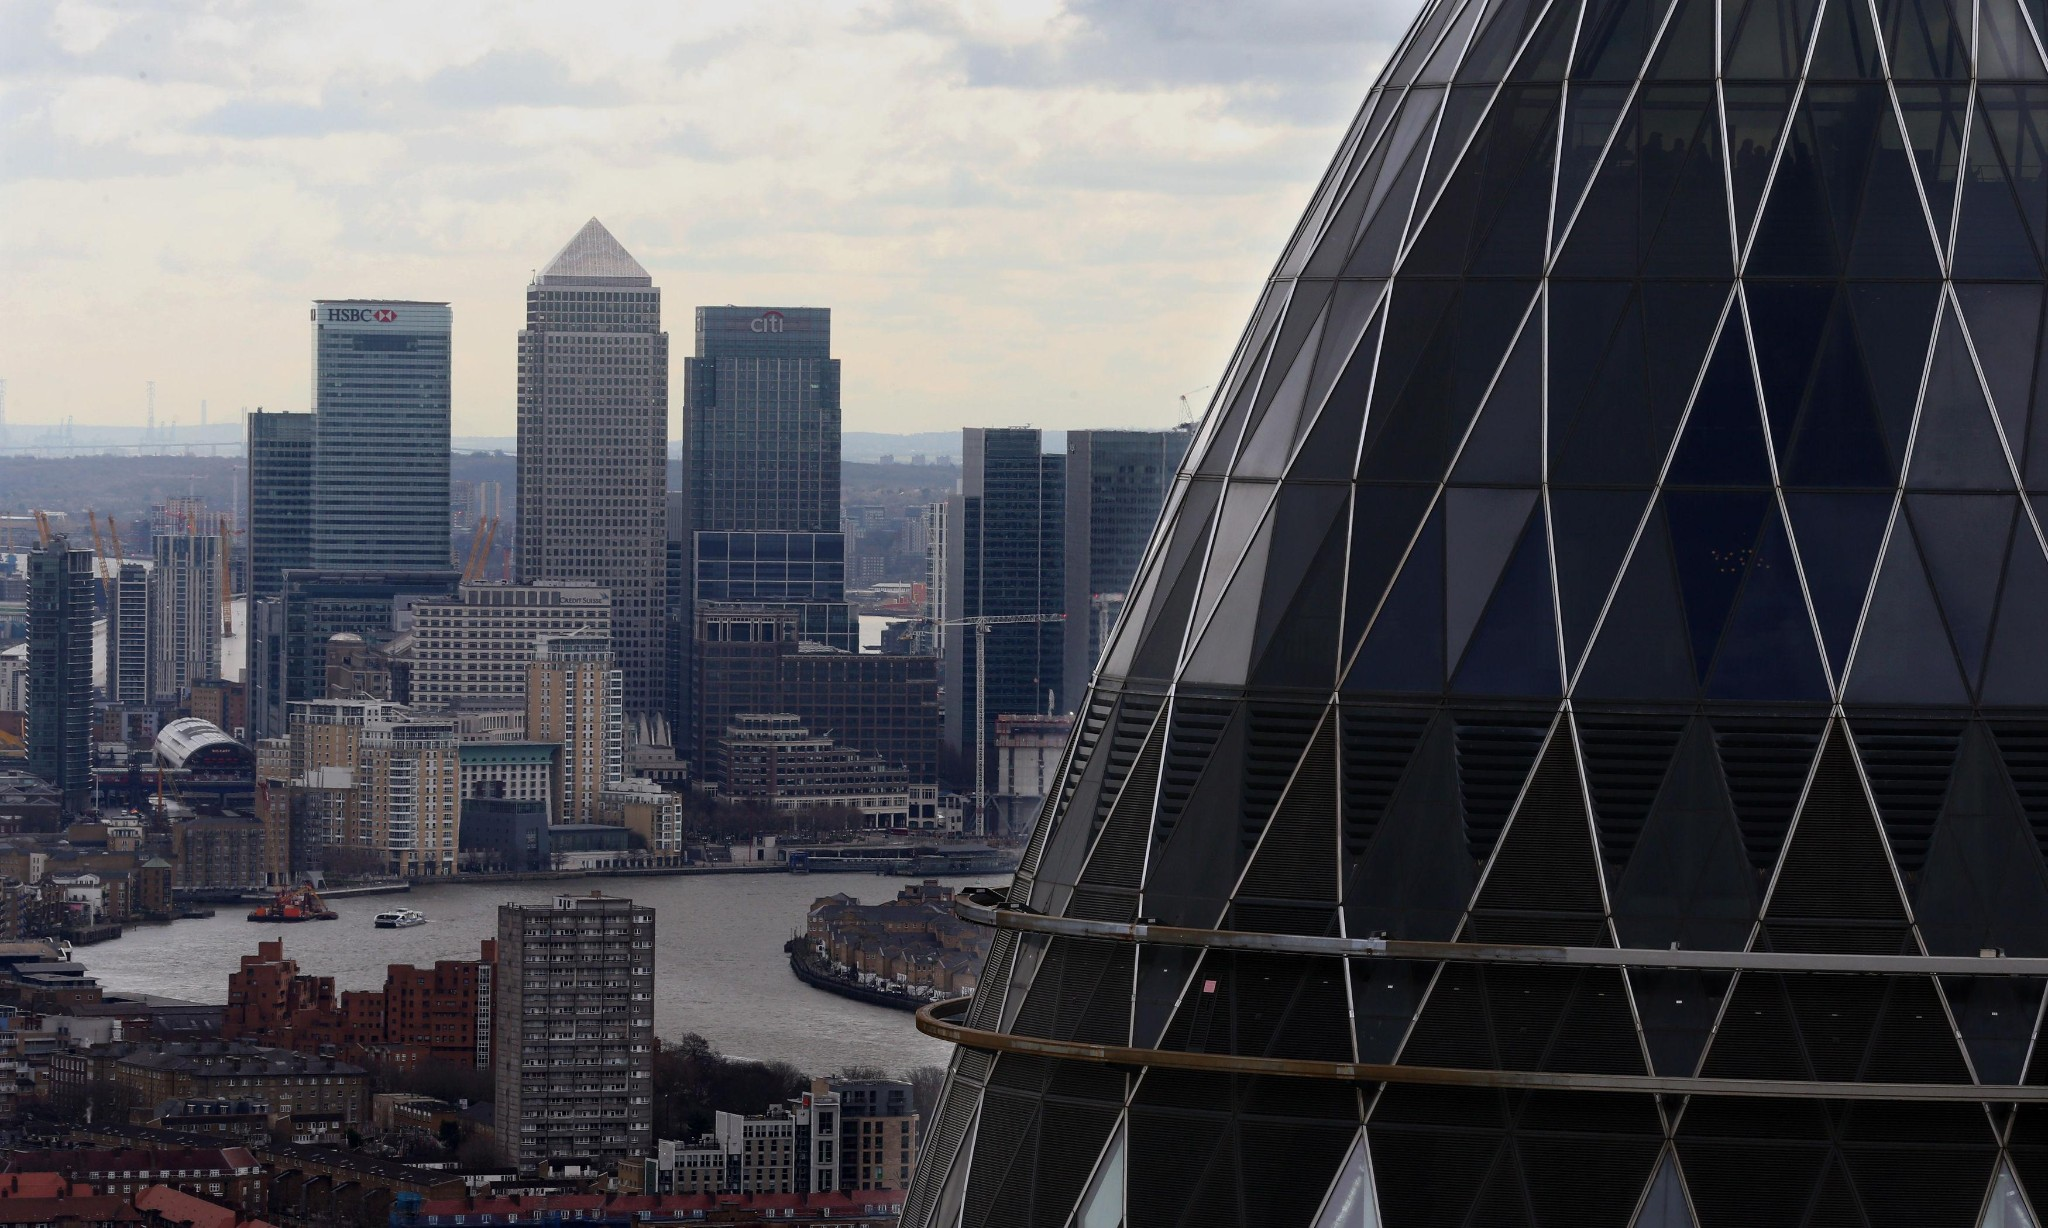 City 'haemorrhaging' talent because of Brexit, says headhunter